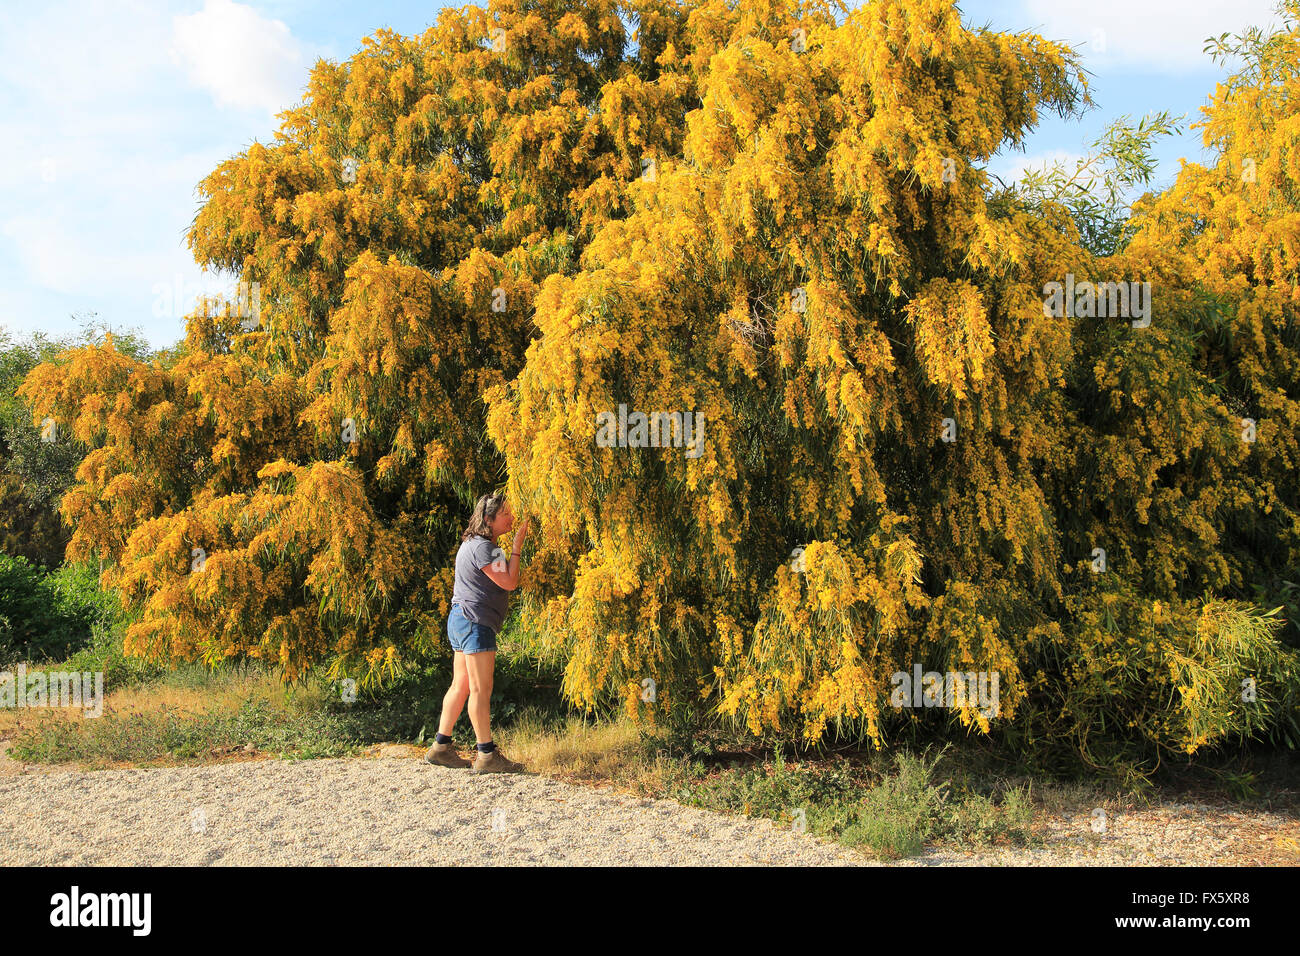 Acacia Mimosa Stock Photos Acacia Mimosa Stock Images Alamy